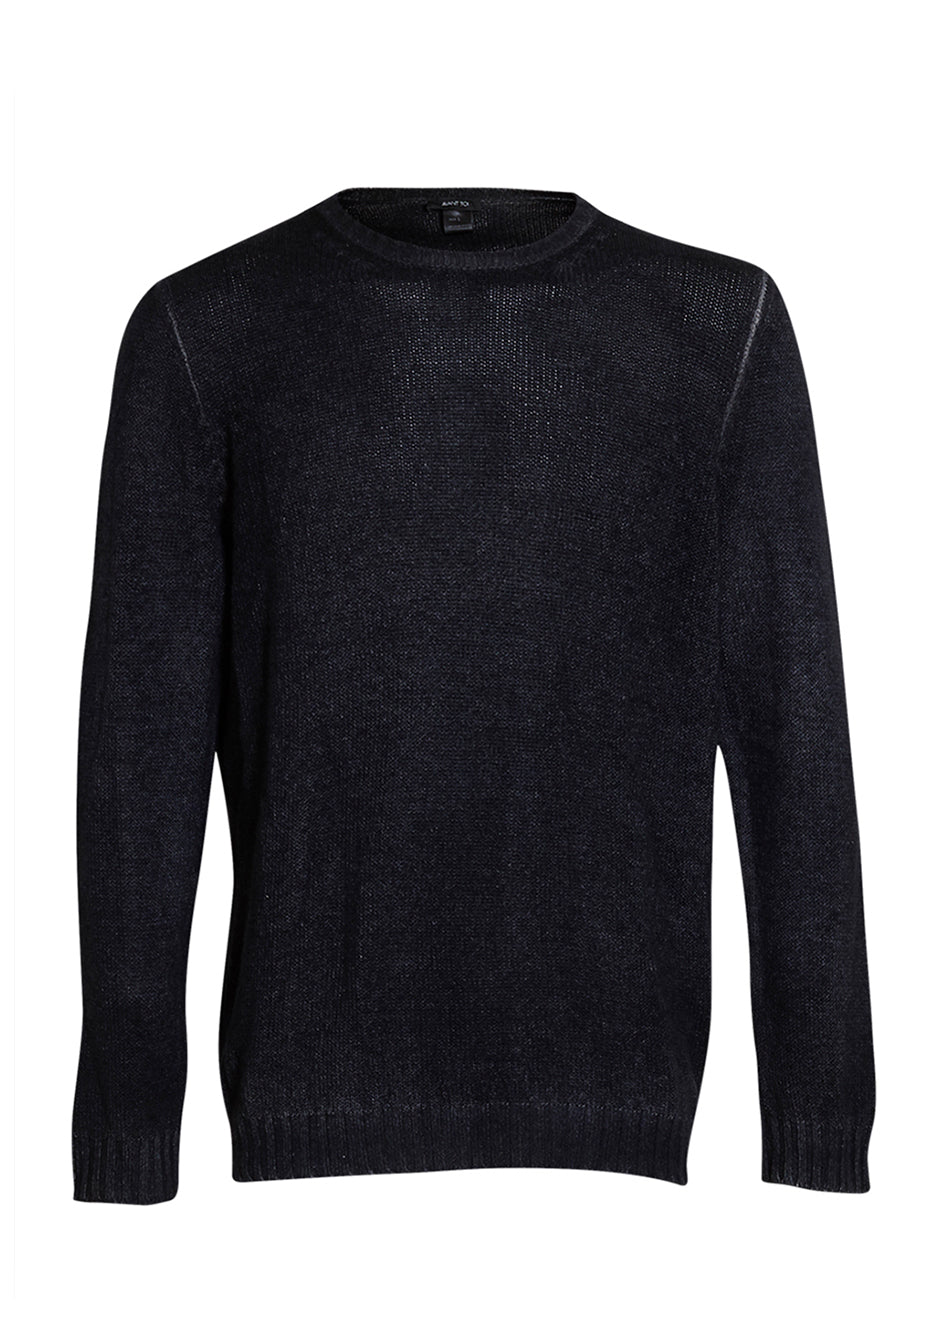 Black Blue Cashmere Sweater